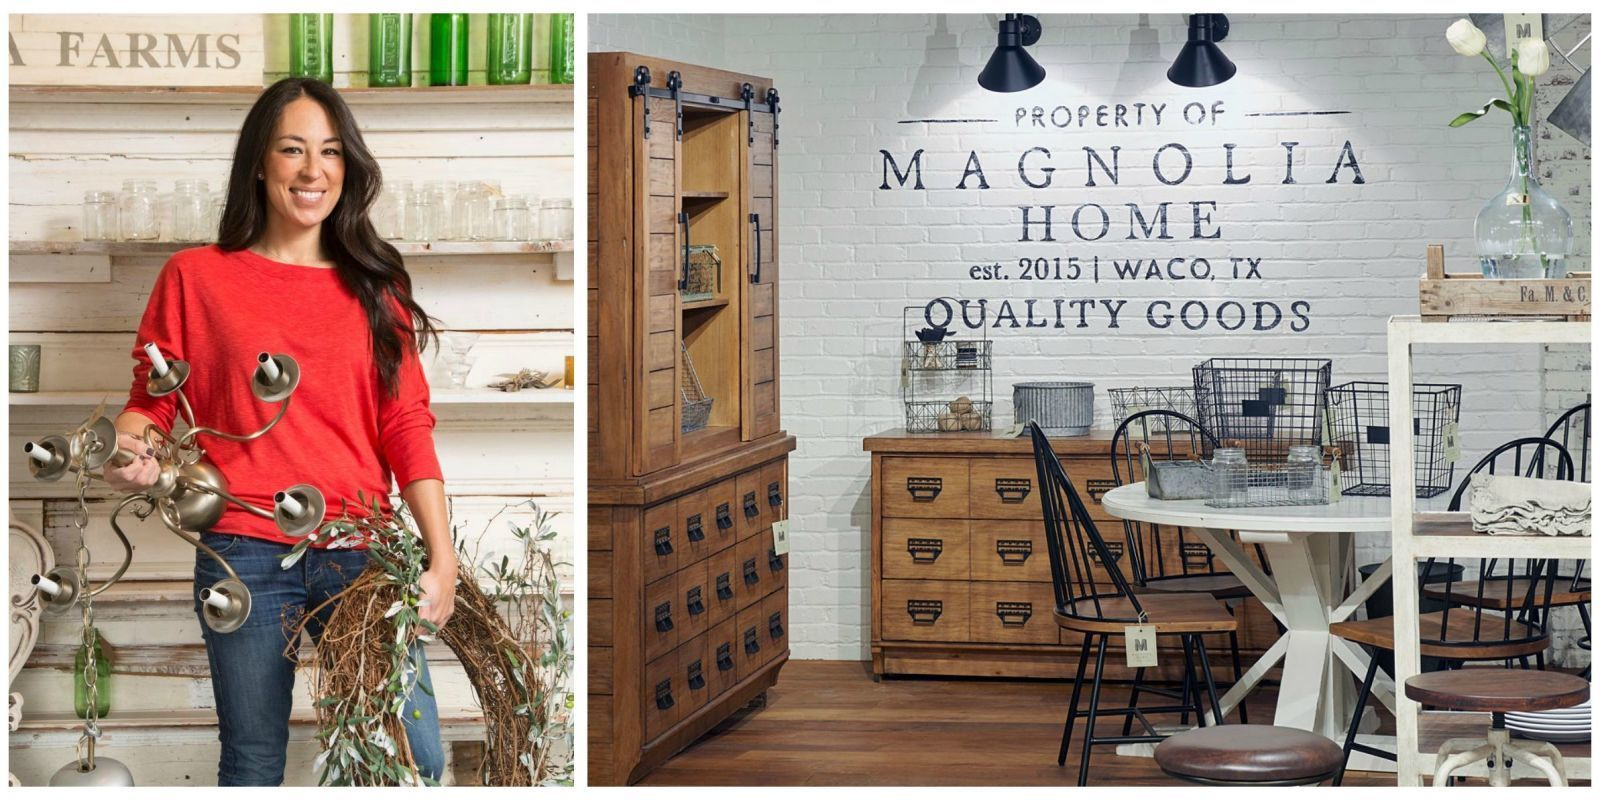 Magnolia farms furniture online store home decorating for Home decorator stores online